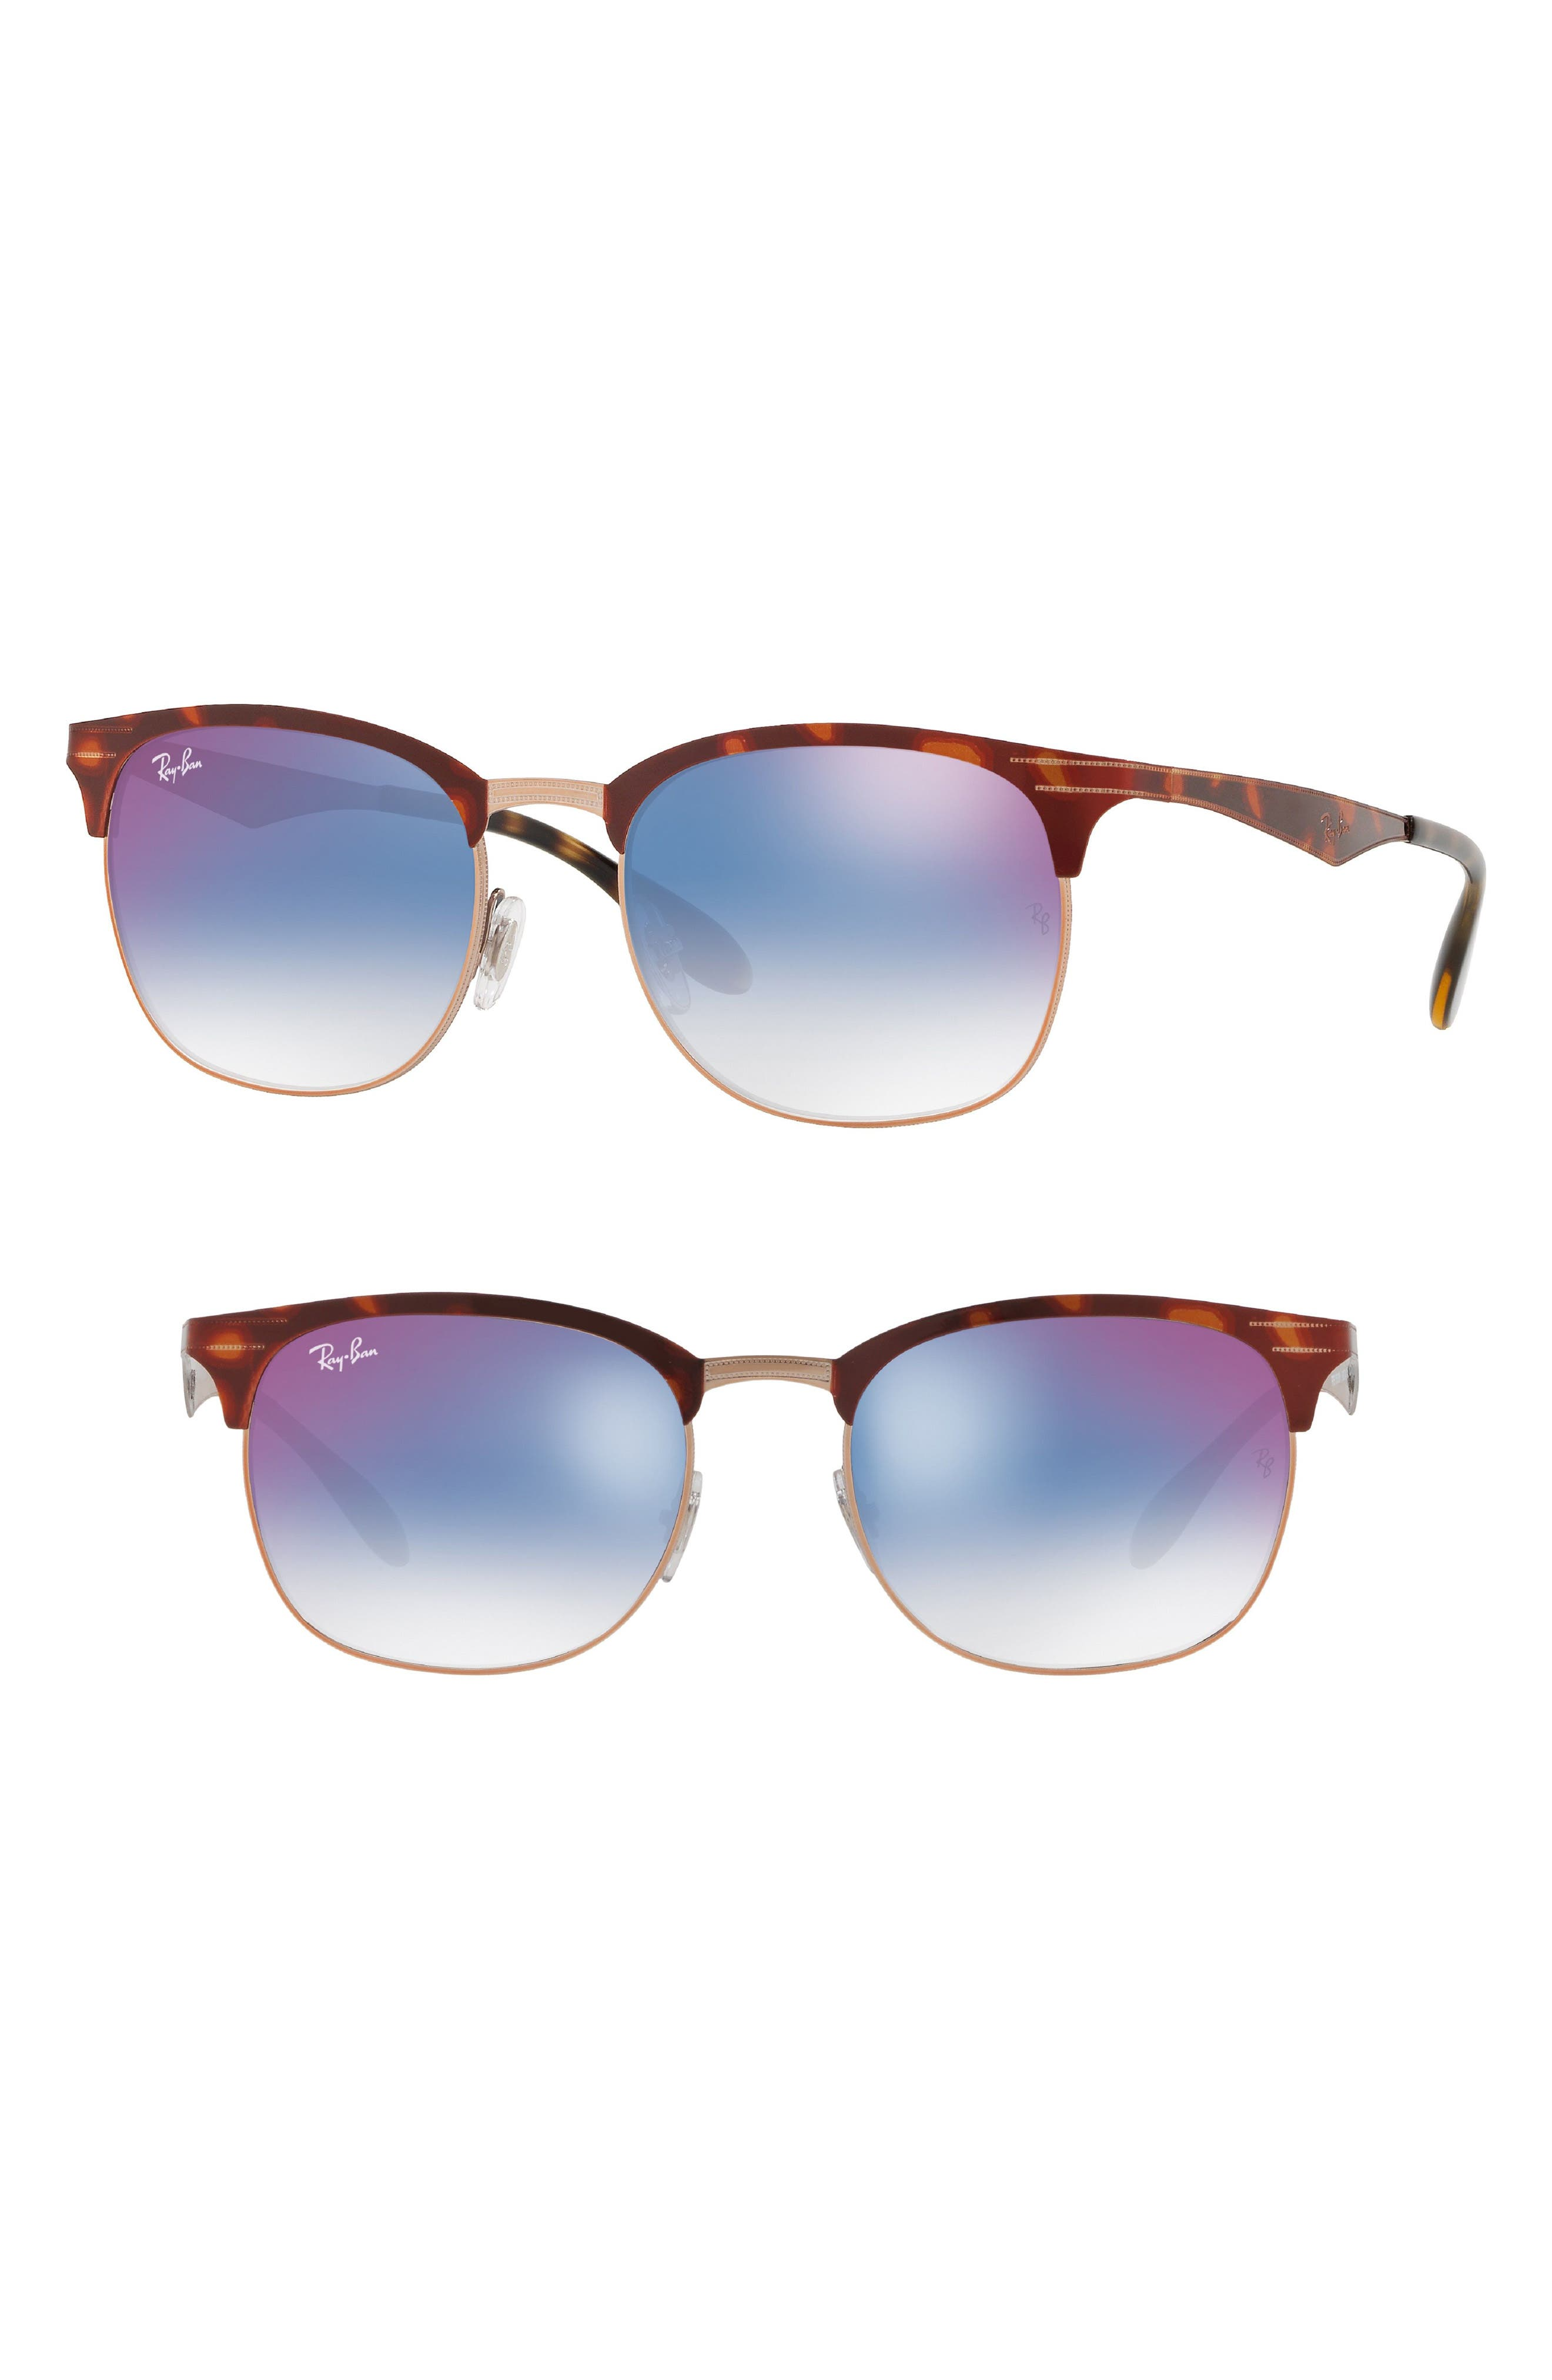 Highstreet 53mm Clubmaster Sunglasses,                             Main thumbnail 1, color,                             Red Gradient Mirror